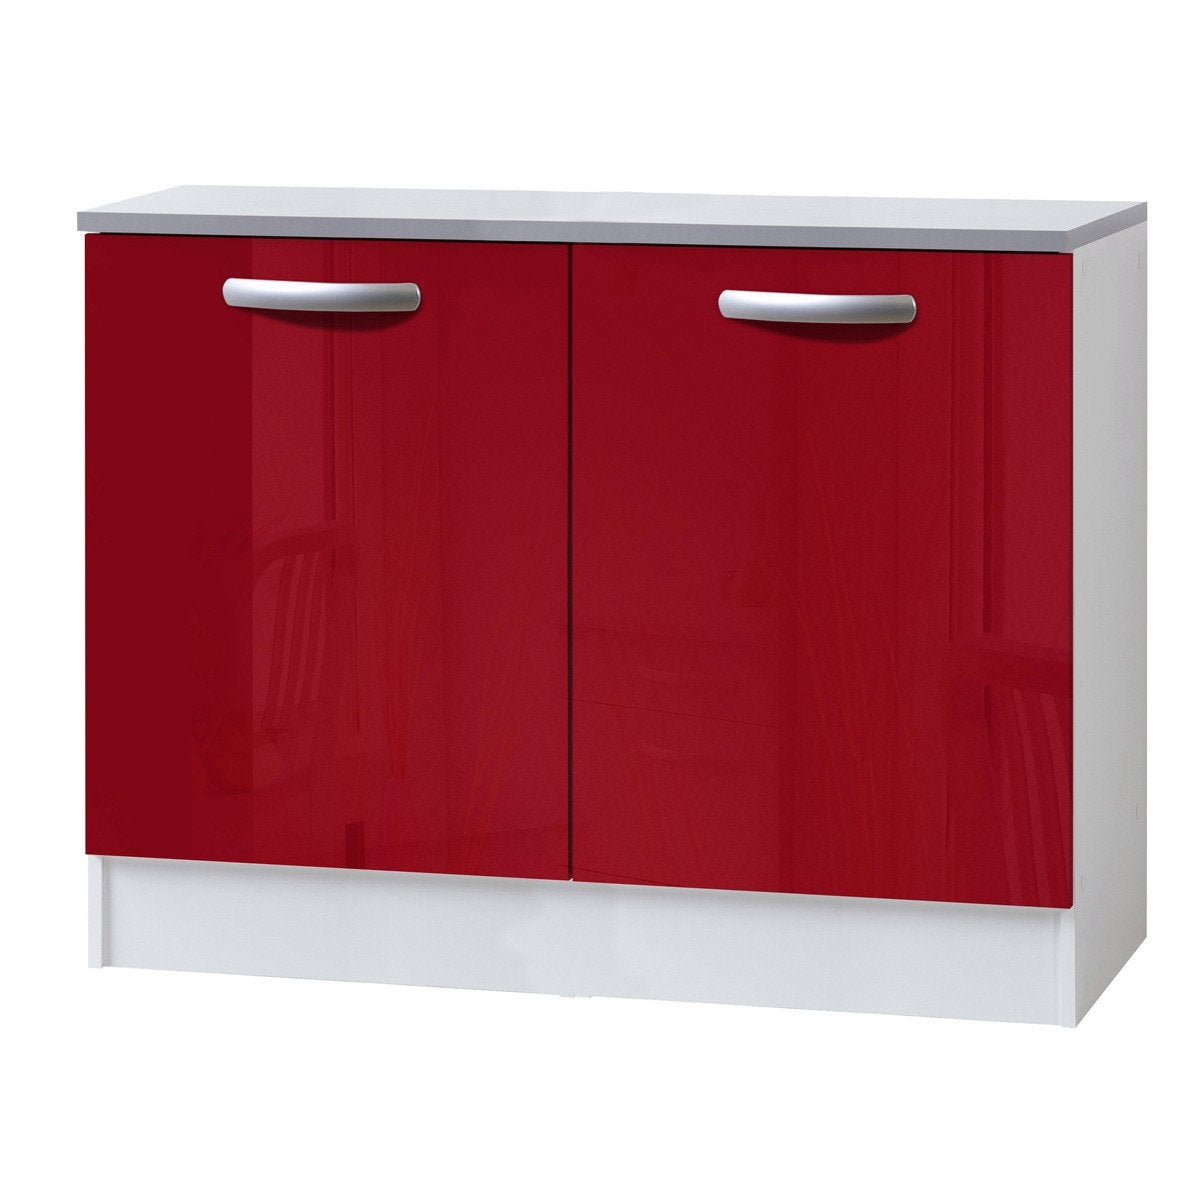 Affordable meuble de cuisine bas portes rouge brillant hx - Element de cuisine leroy merlin ...